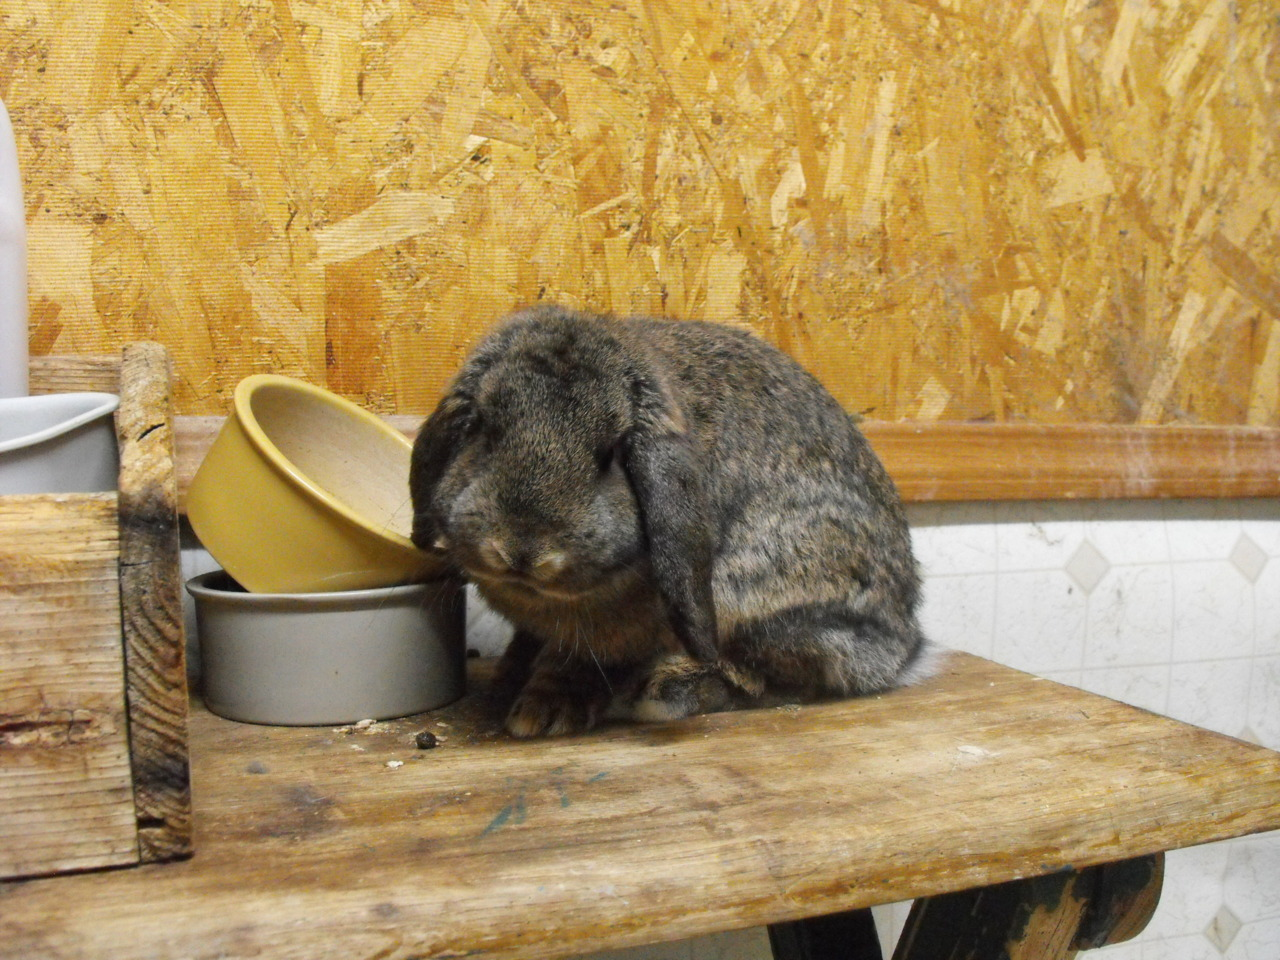 Bunny Will Pout Until There Is Food in Her Bowl